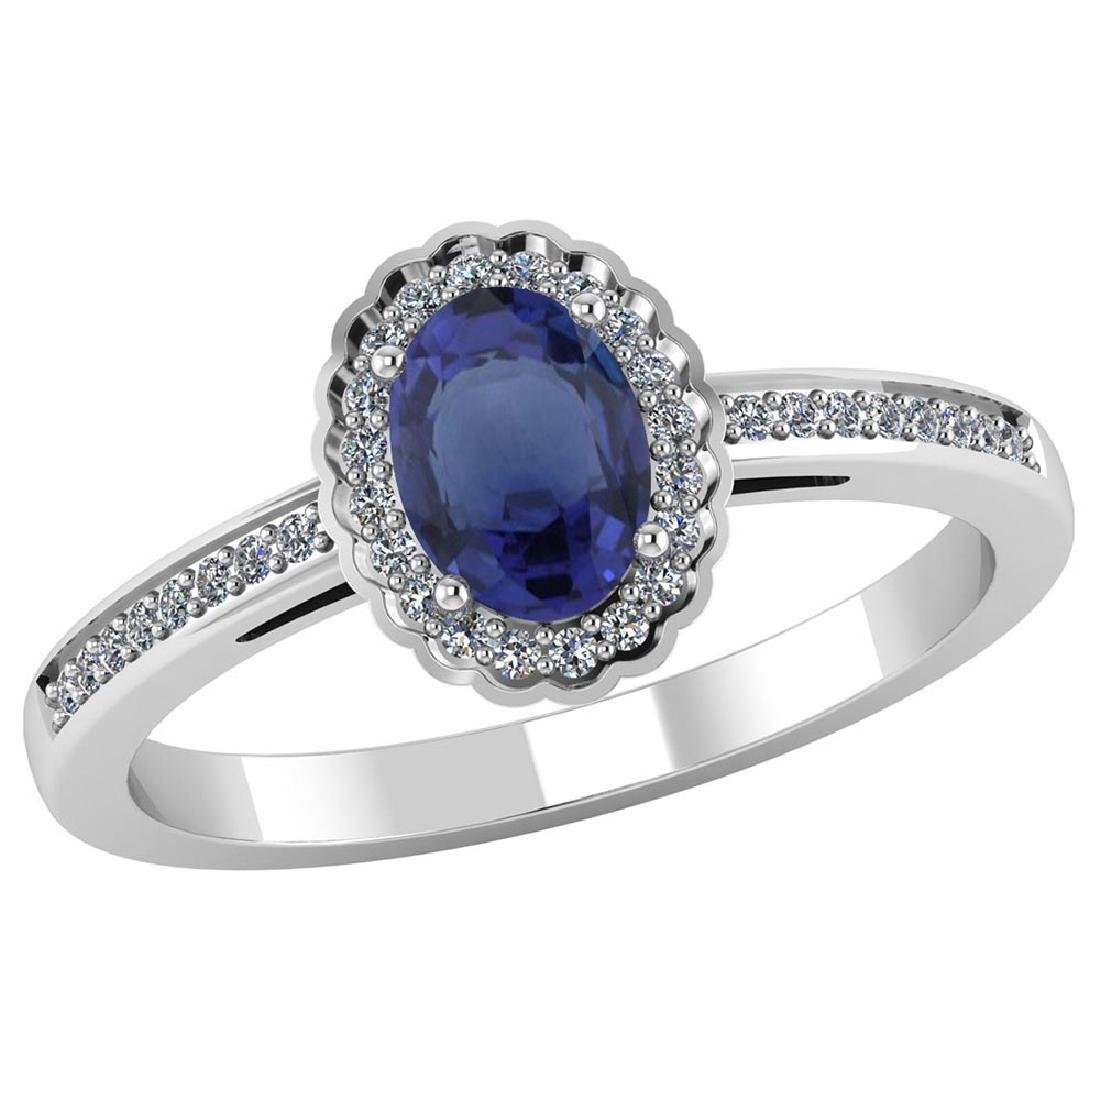 Certified 1.50 CTW Genuine Blue Sapphire And Diamond 14